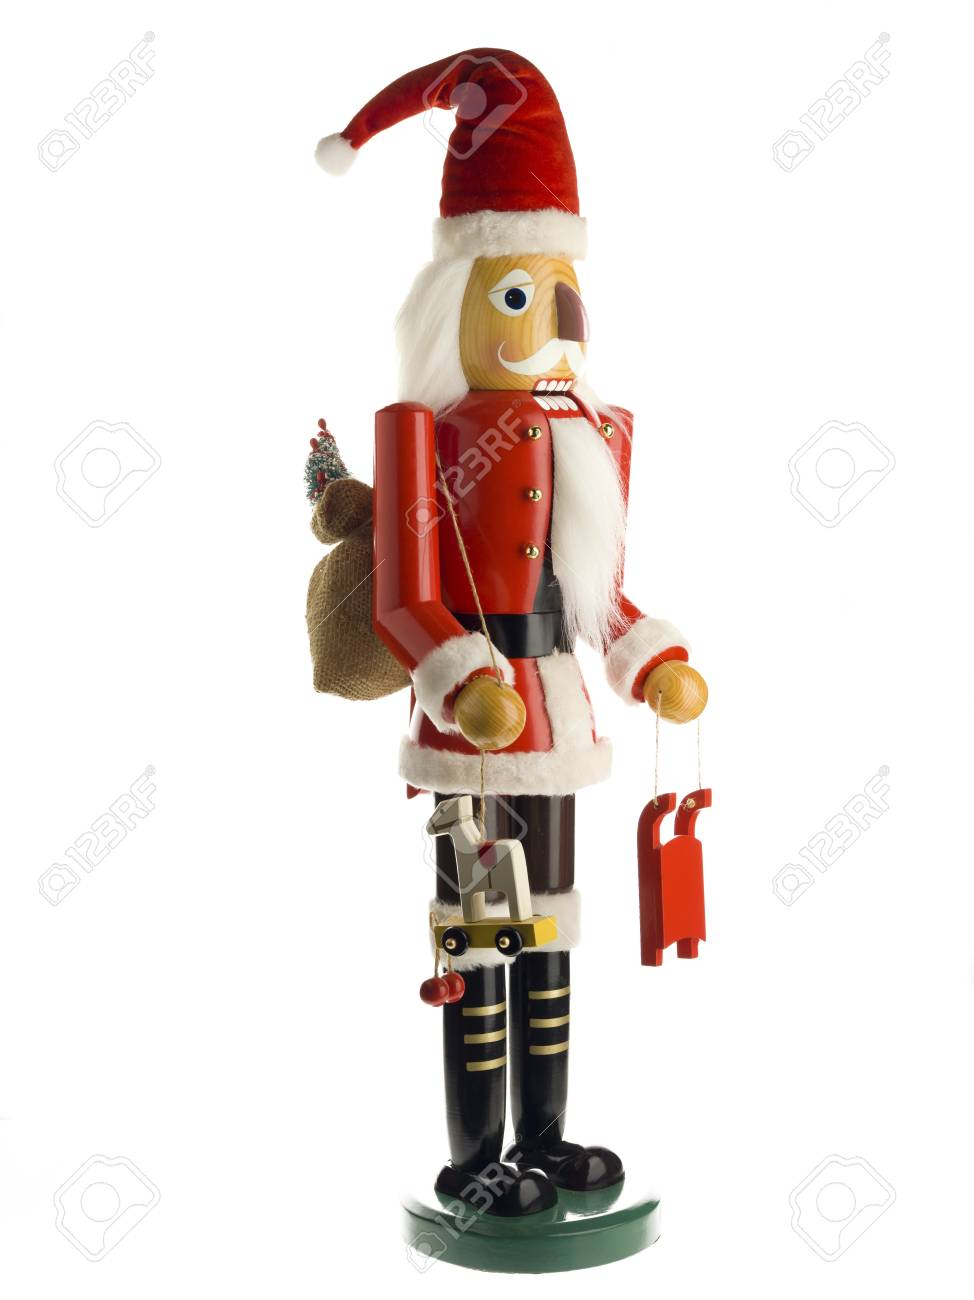 Close-up shot of figurine of a Santa Claus. Stock Photo - 17141064